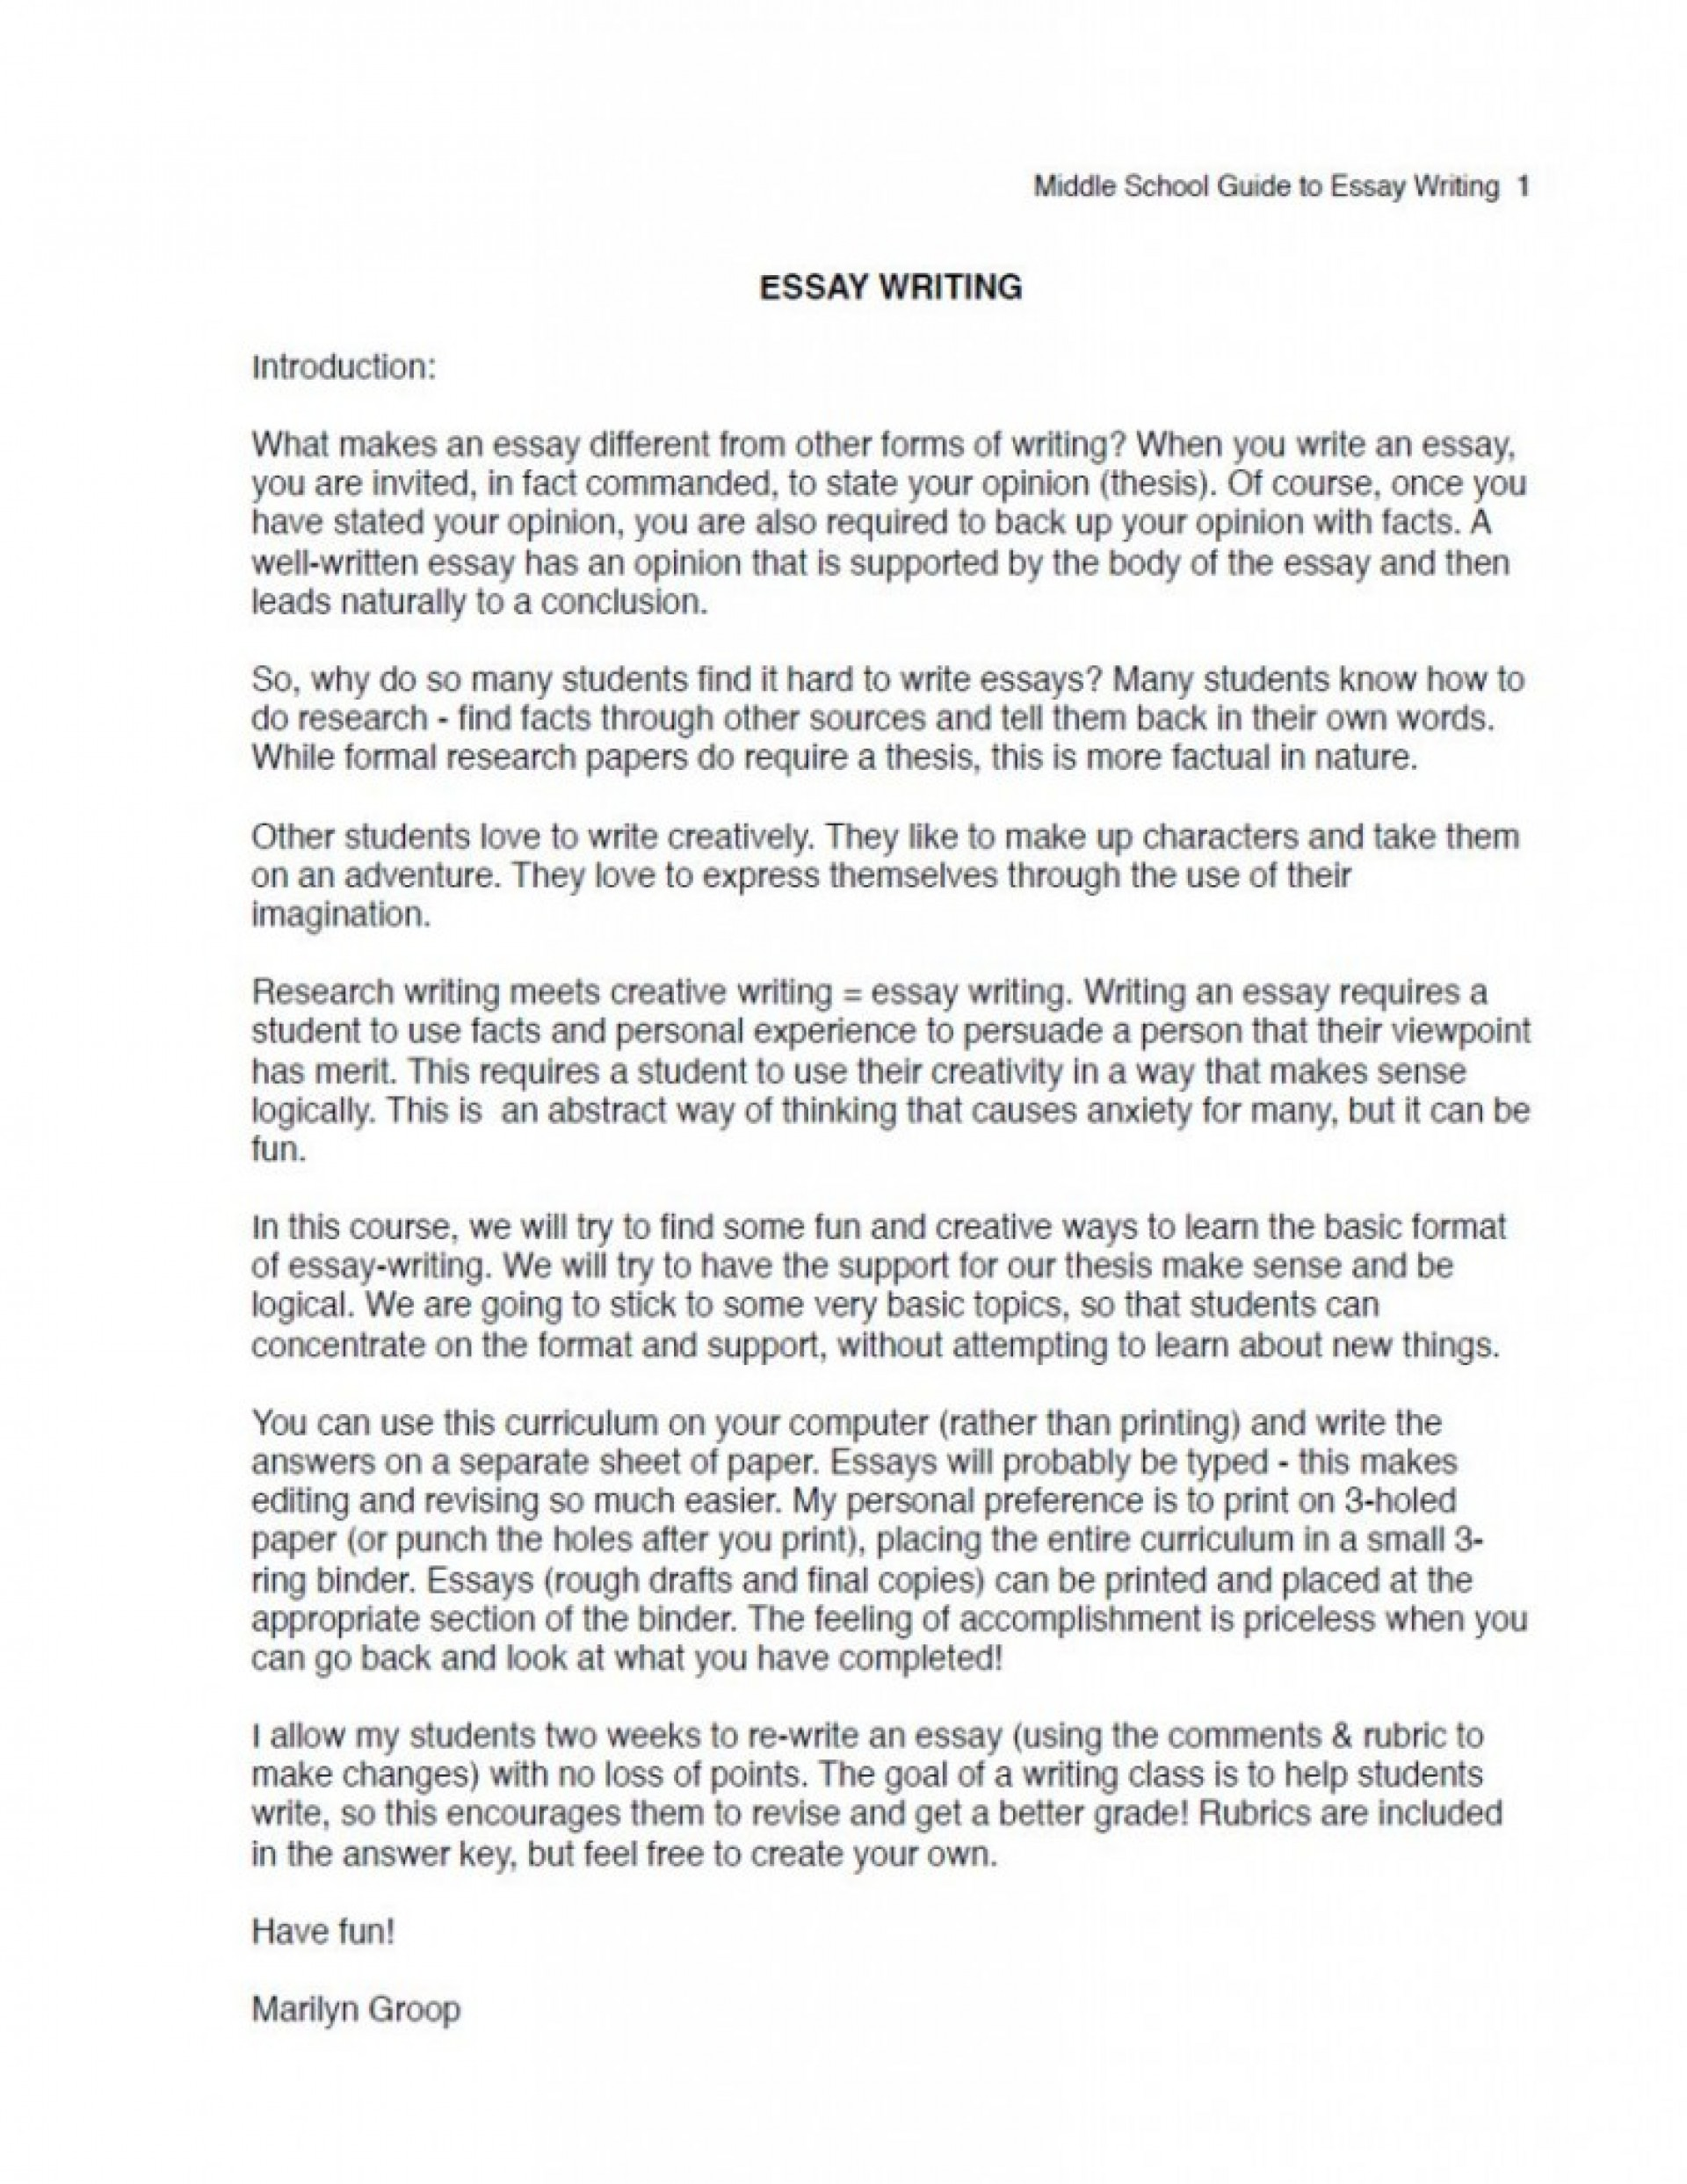 007 Essay Example Ms Excerpt 791x1024cb Free Awesome Persuasive Outline Template On Texting While Driving Examples 1920